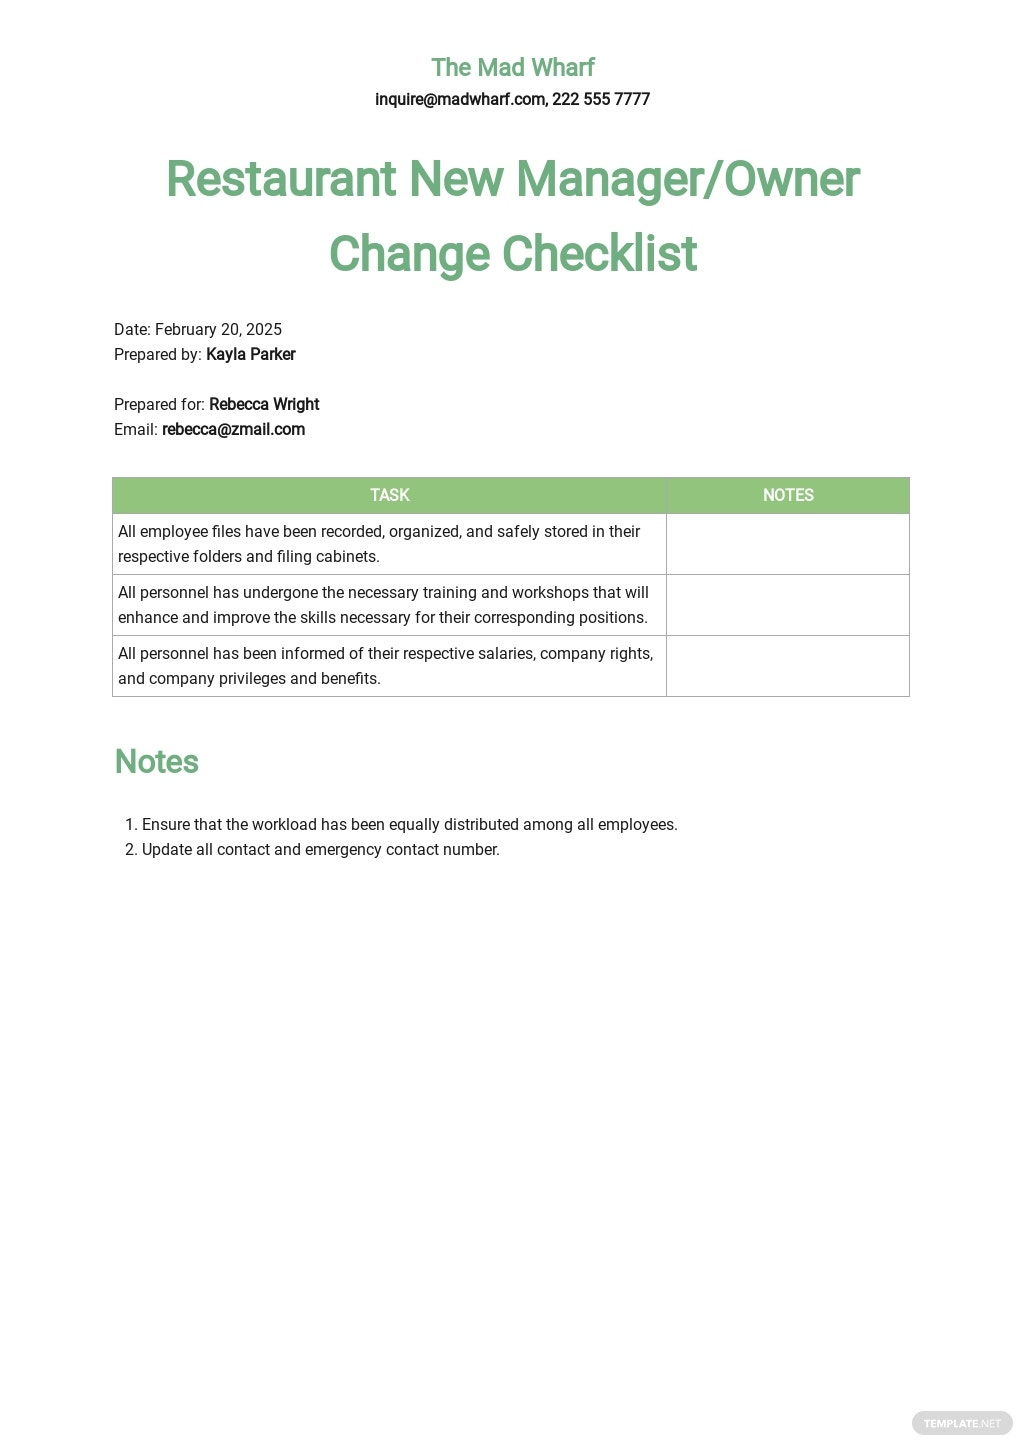 Restaurant New Manager / Owner Change Checklist Template